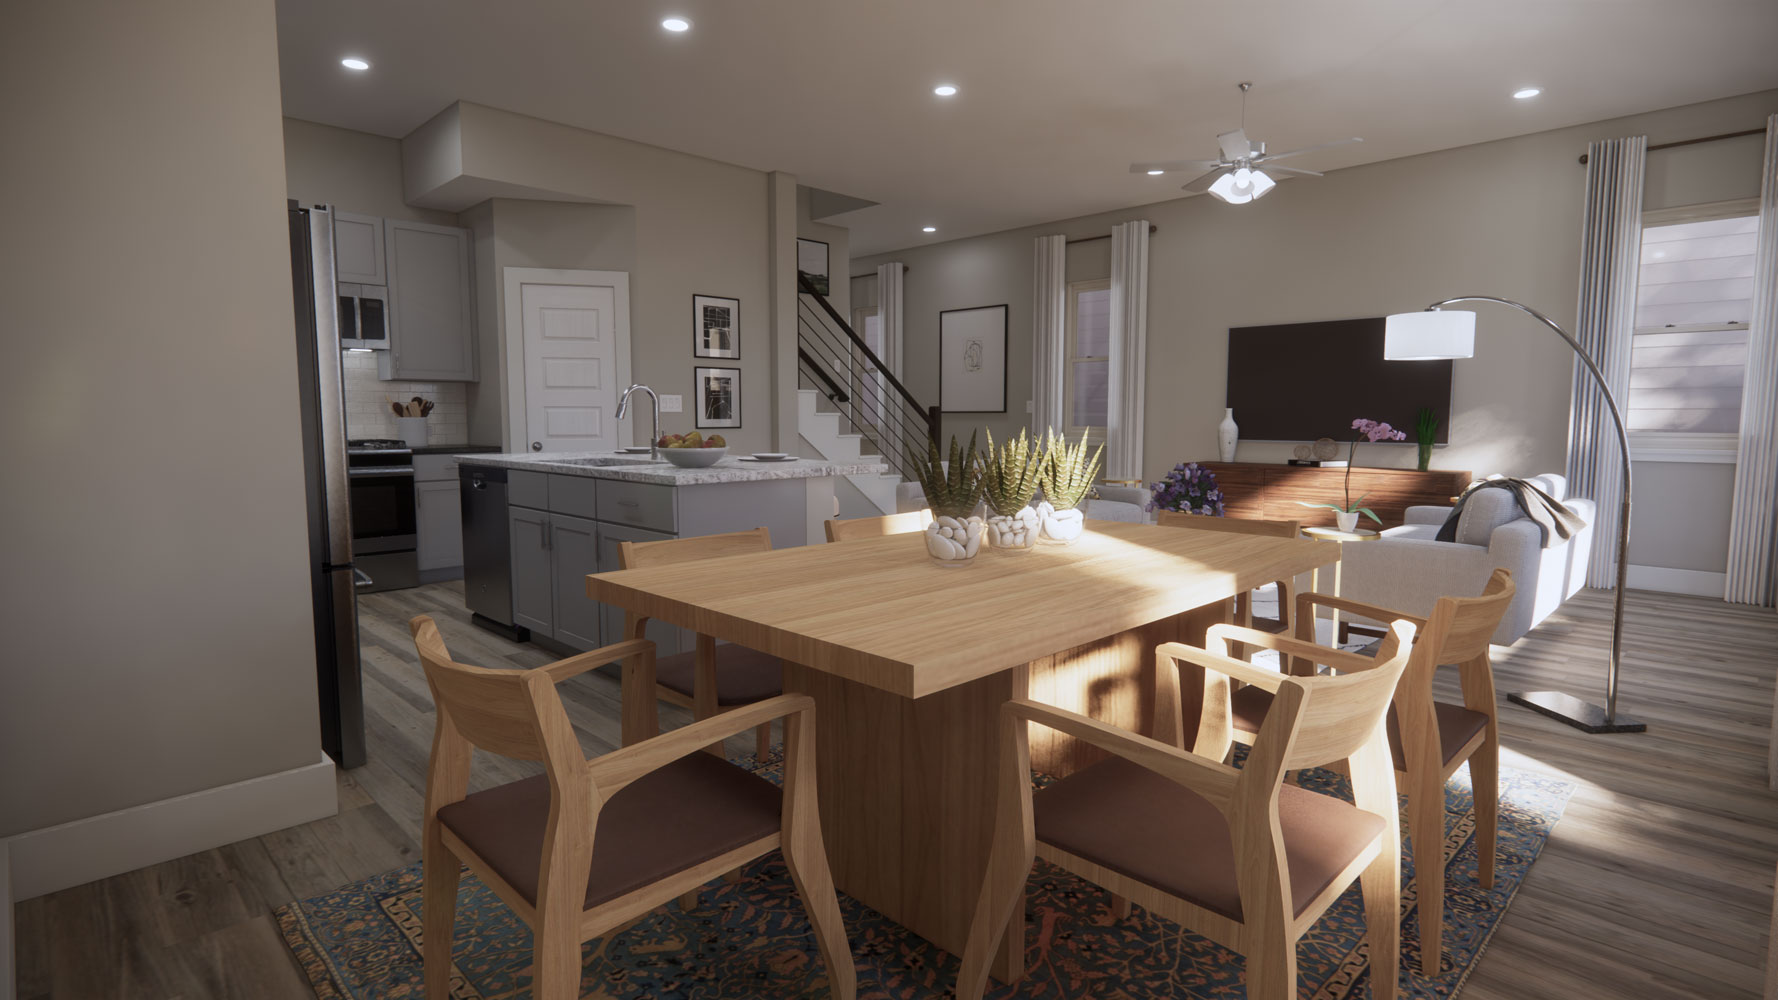 Space for Dining Set at Echelon at Reverchon Bluffs in Dallas, Texas